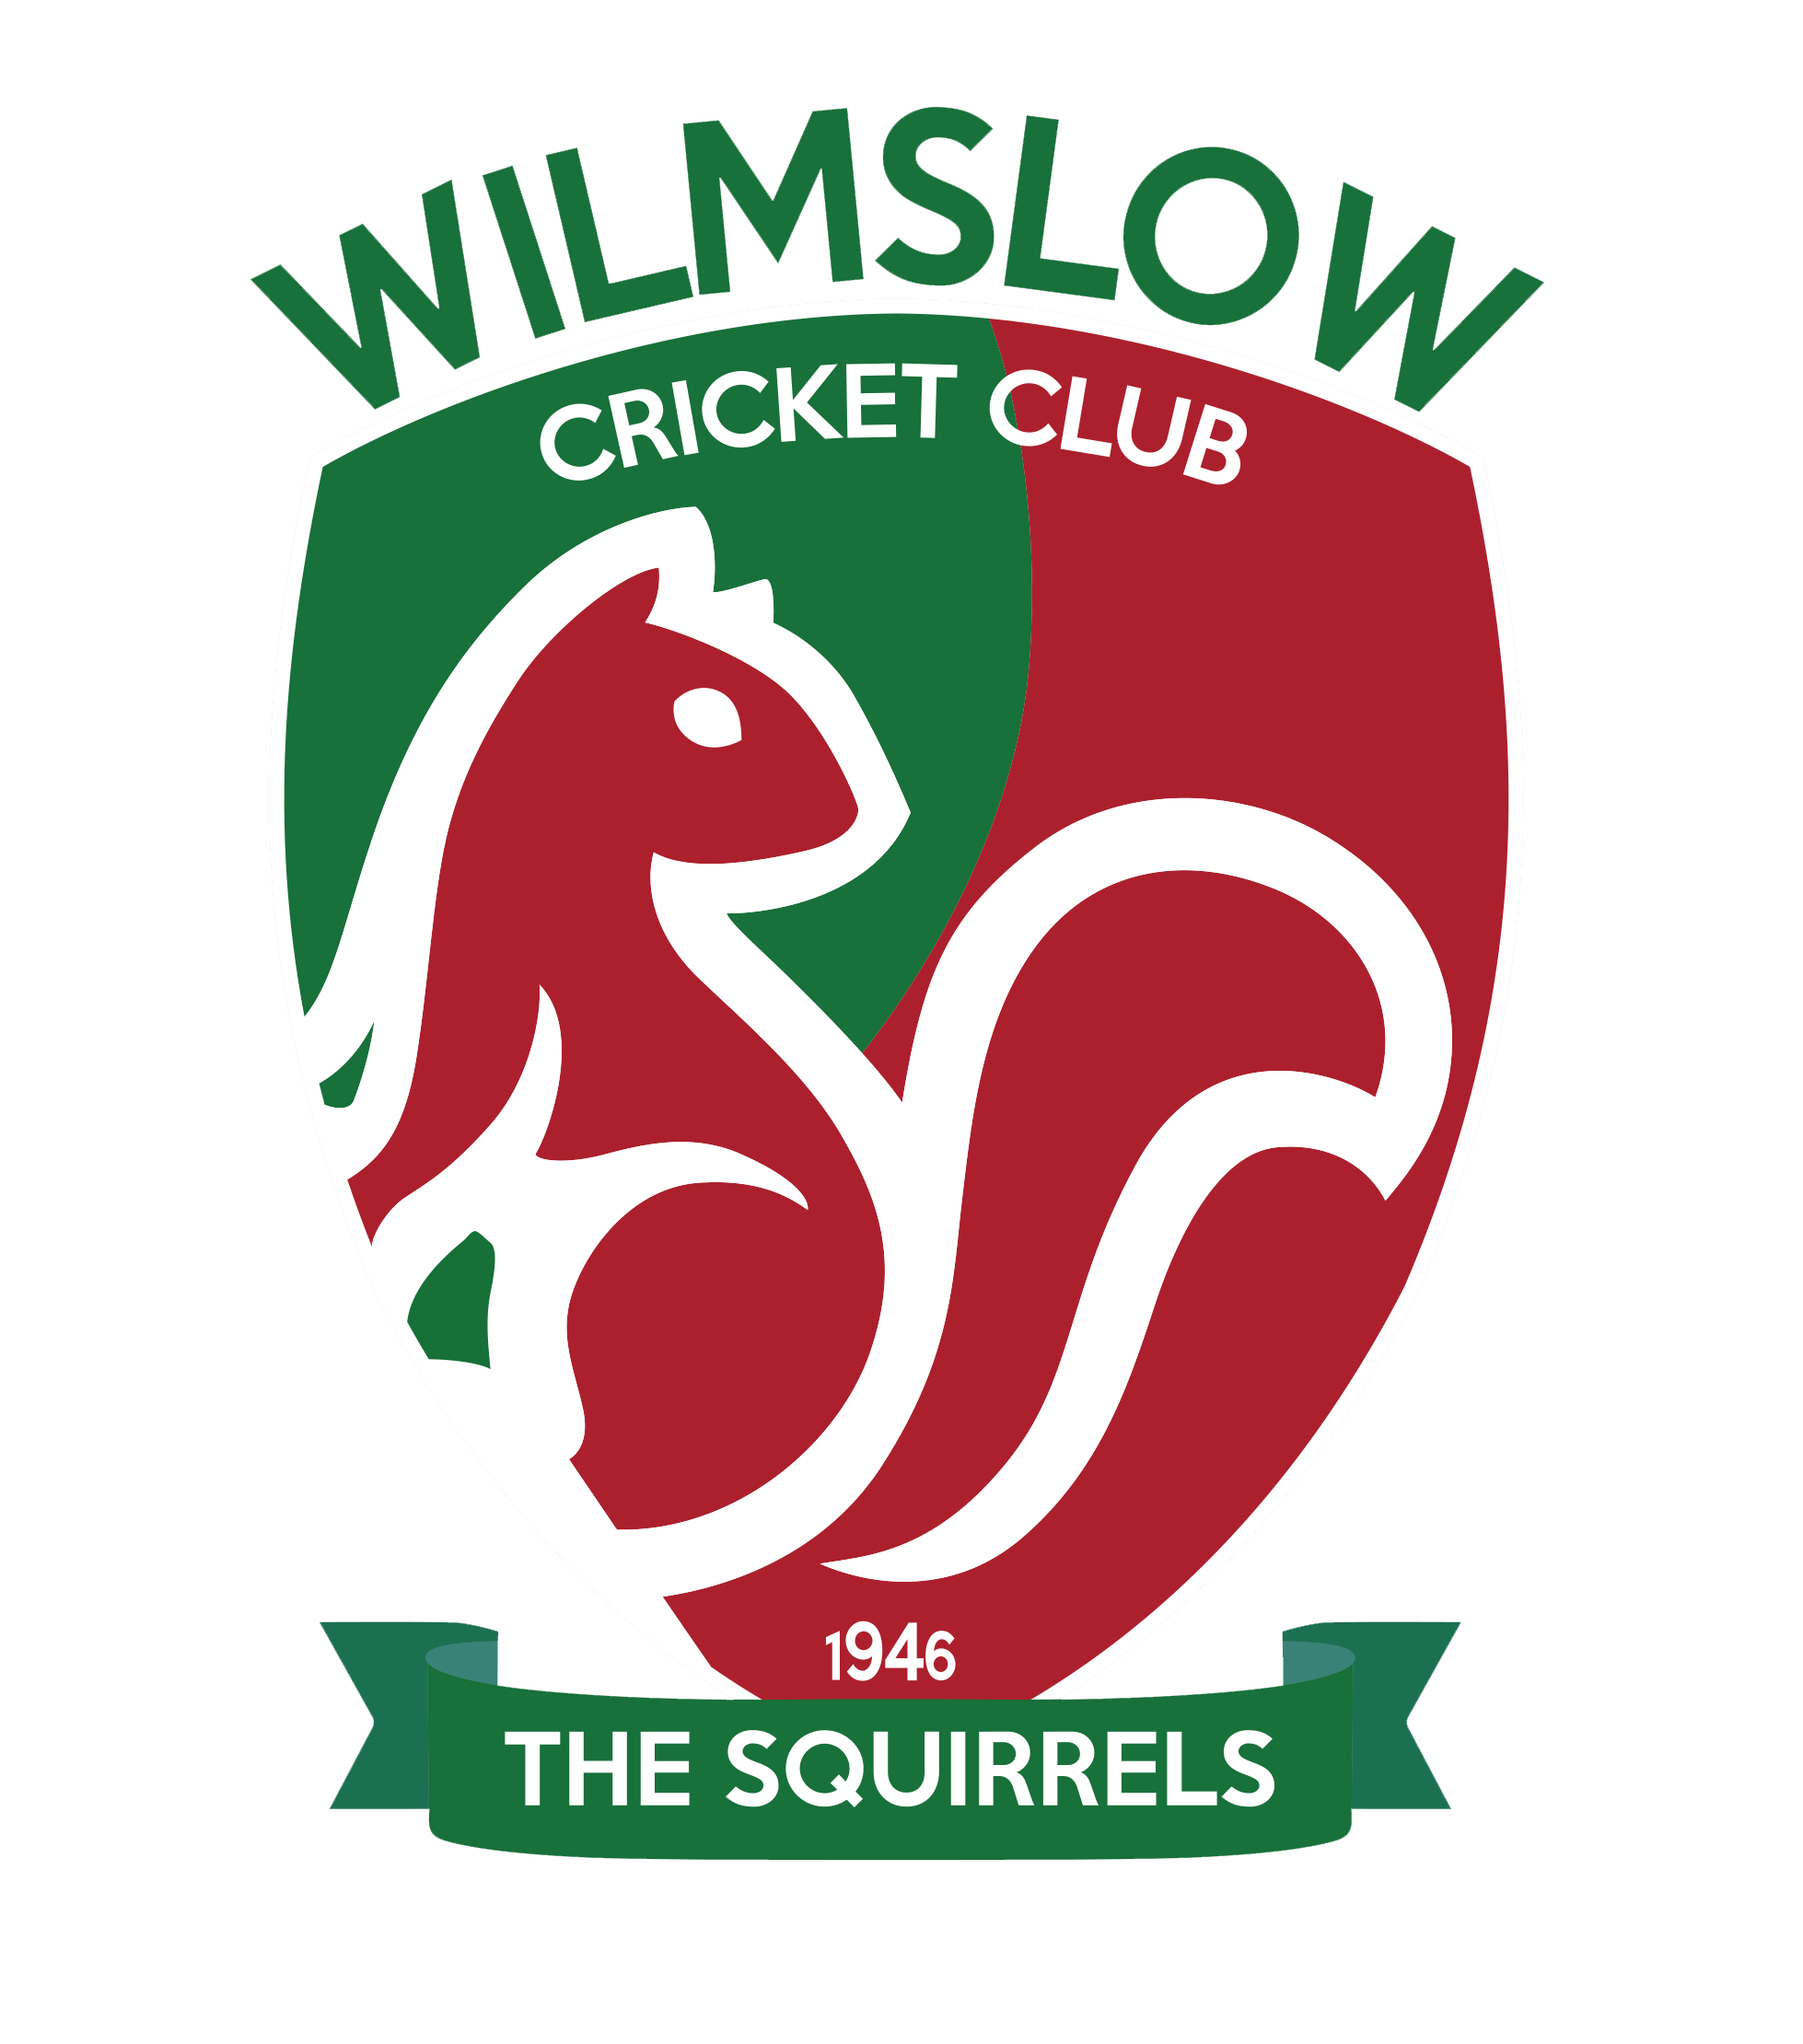 Wilmslow Cricket Club